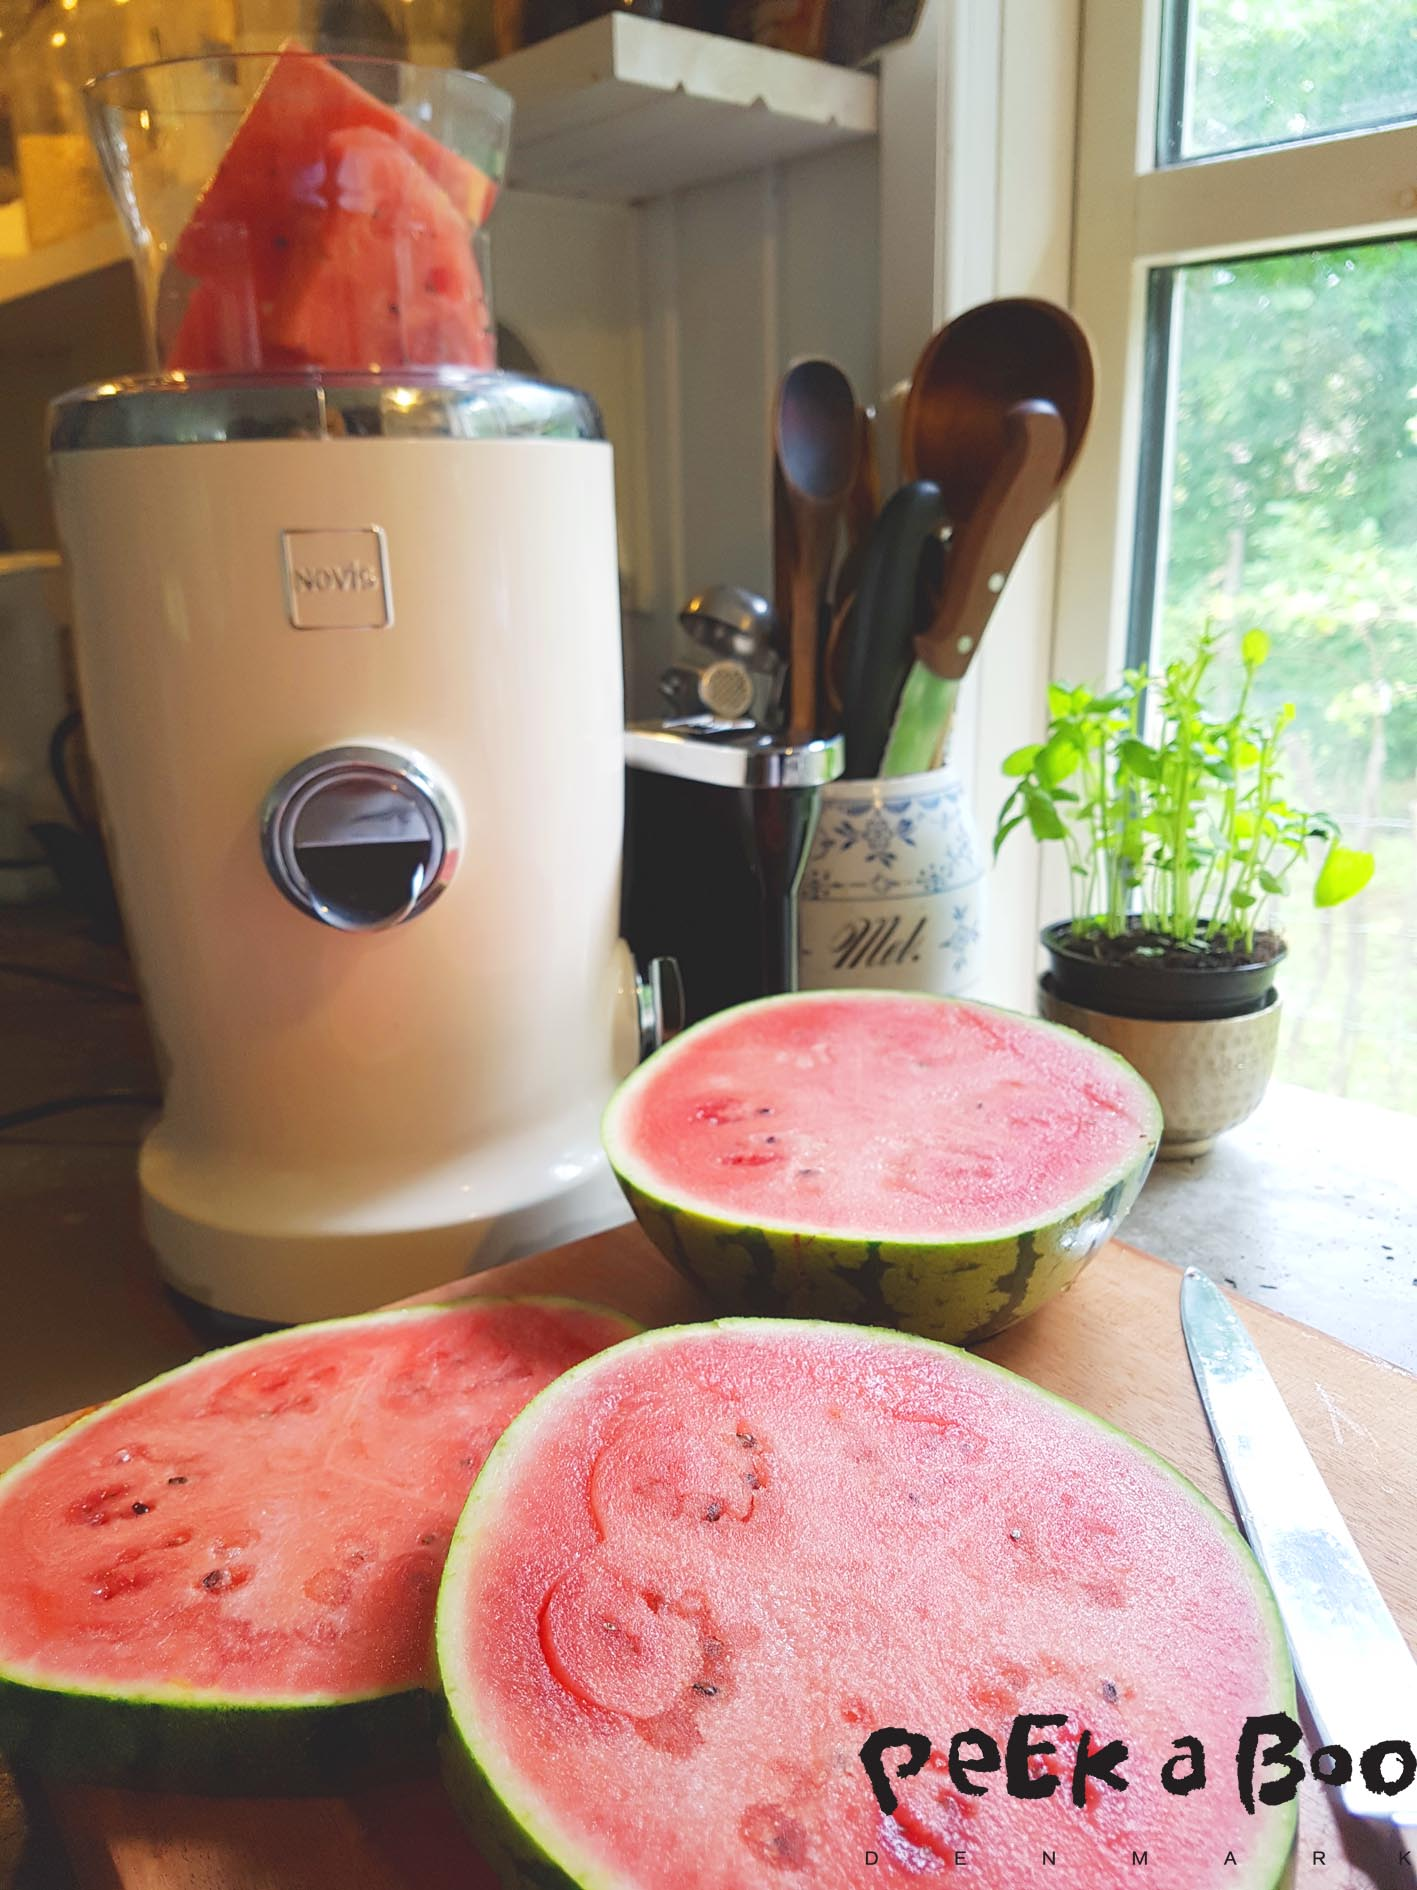 Watermelon juice made on the Novis Vita Juicer.